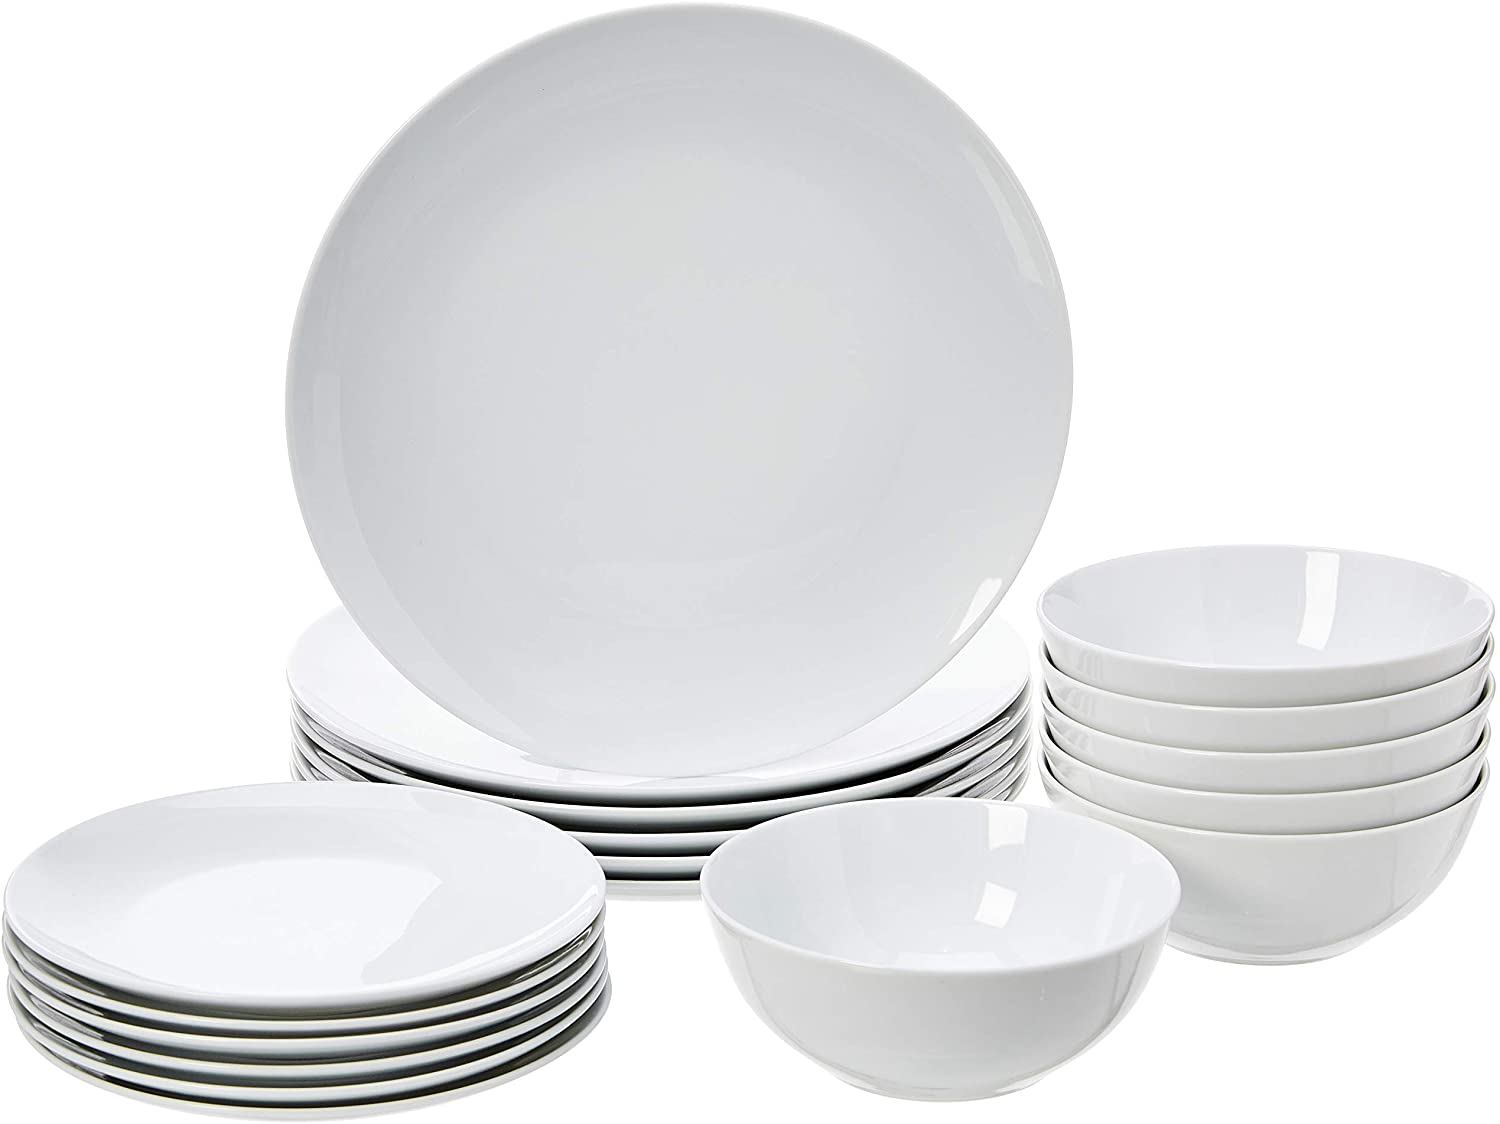 Amazon Basics 18-Piece Kitchen Dinnerware Set, Plates, Dishes, Bowls, Service for 6, White Porcelain Coupe